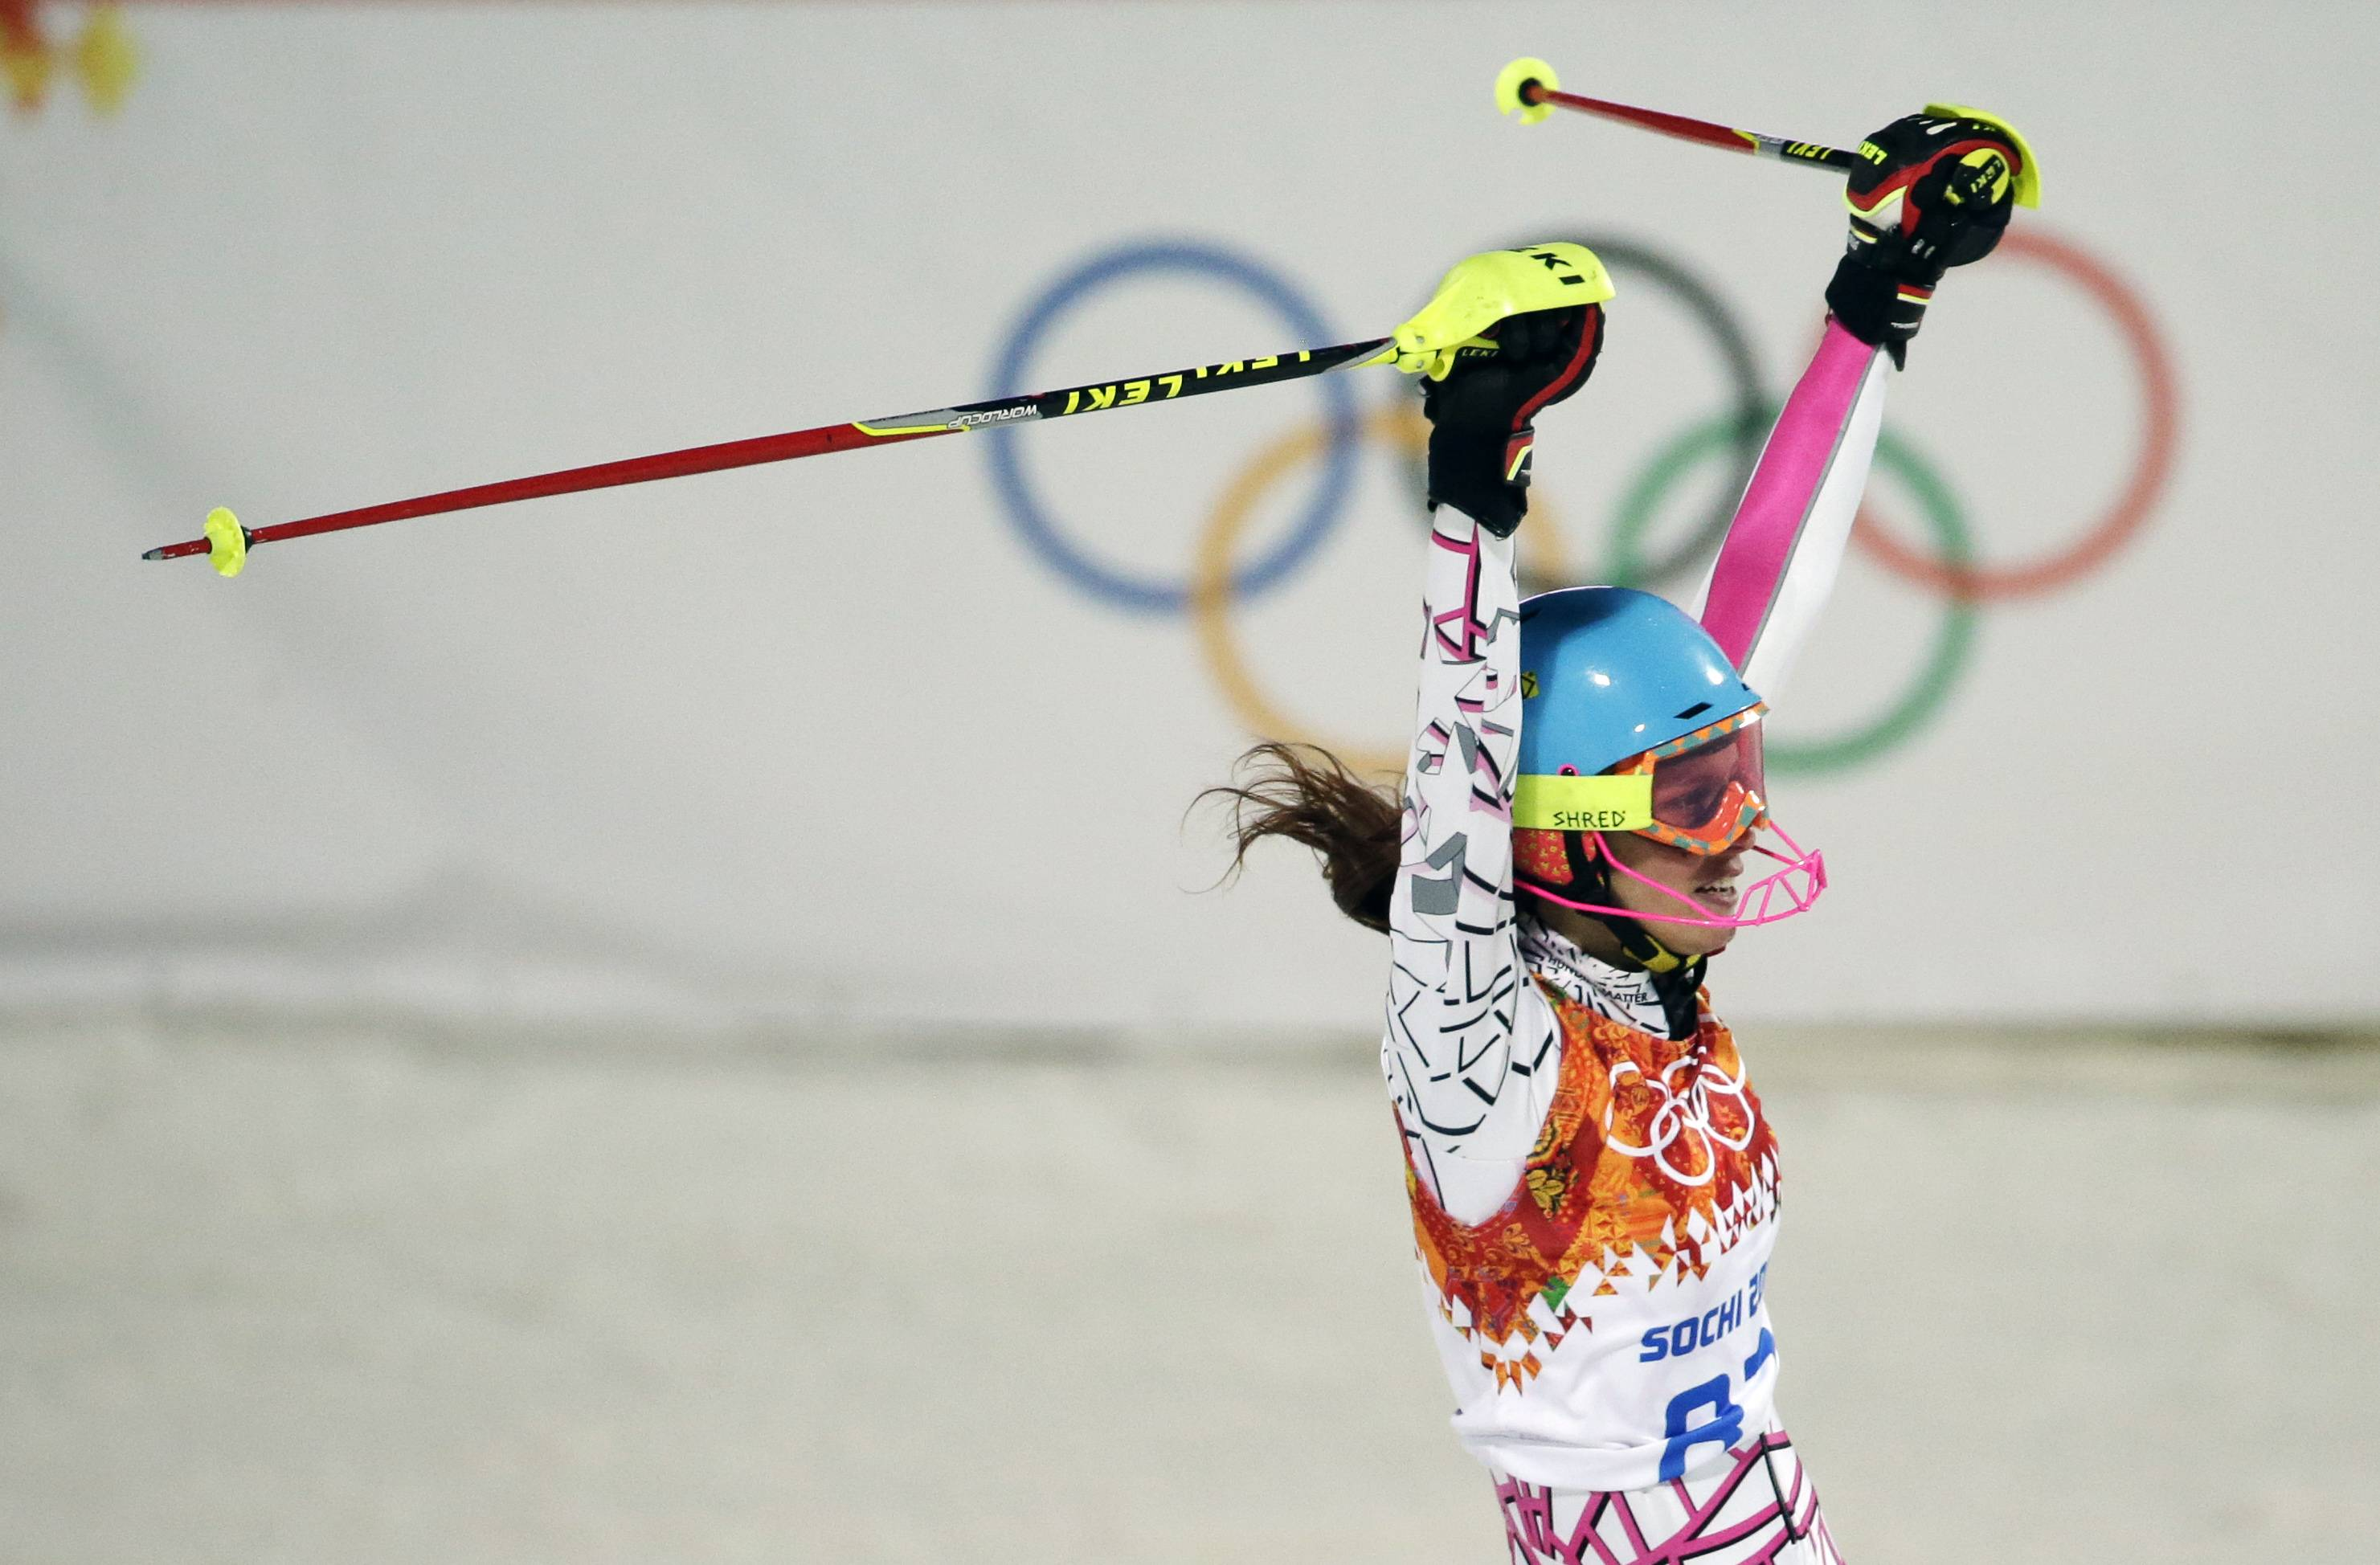 Lebanon's Jacky Chamoun reacts after finishing the second run of the women's slalom.